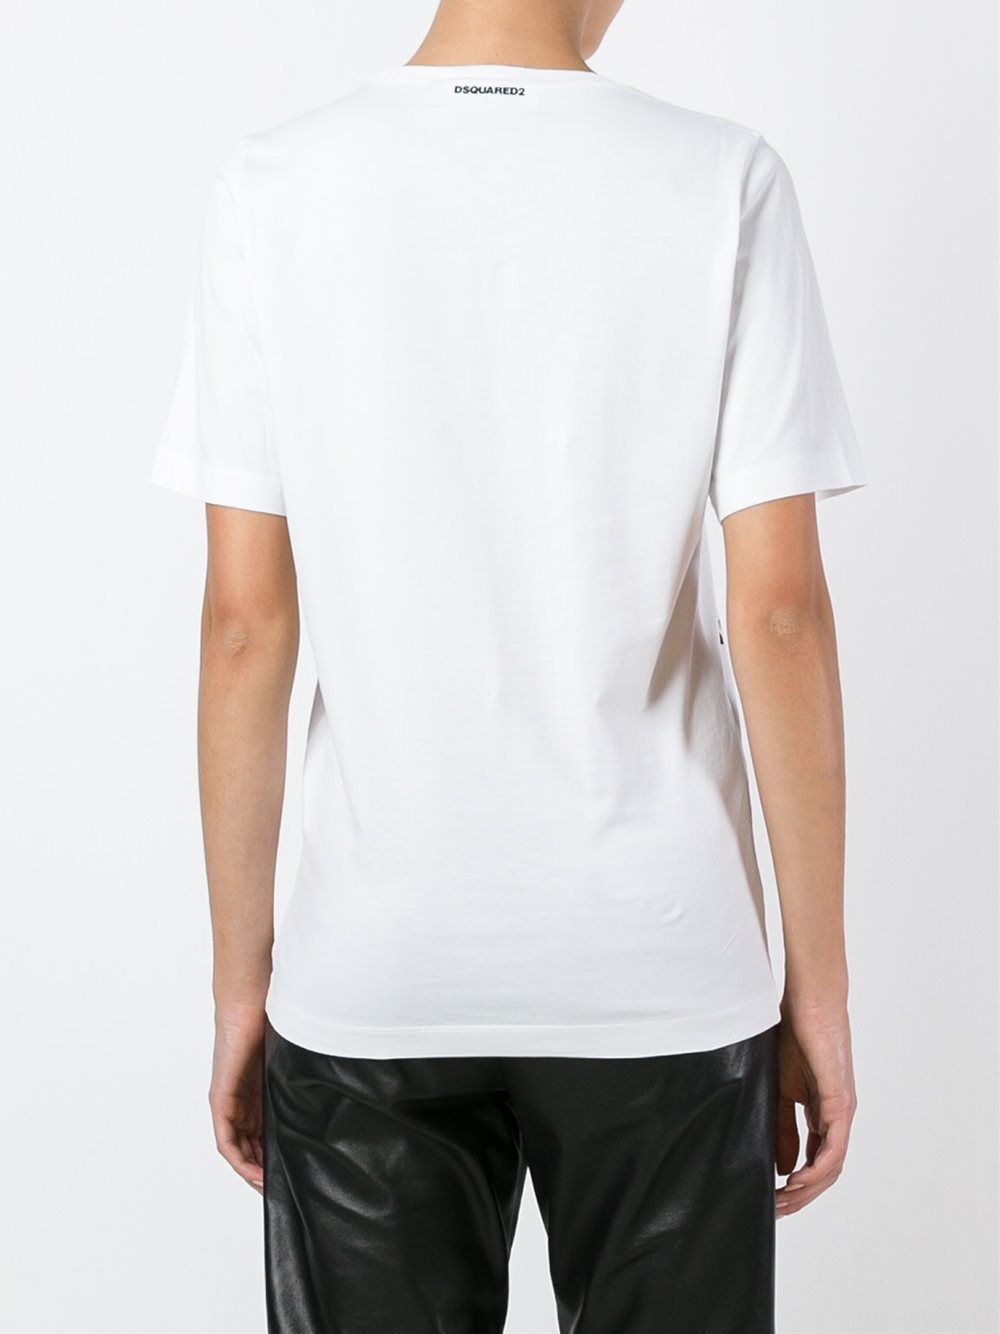 Dsquared mechanical sketch t shirt in black lyst for Mechanical logos for t shirts